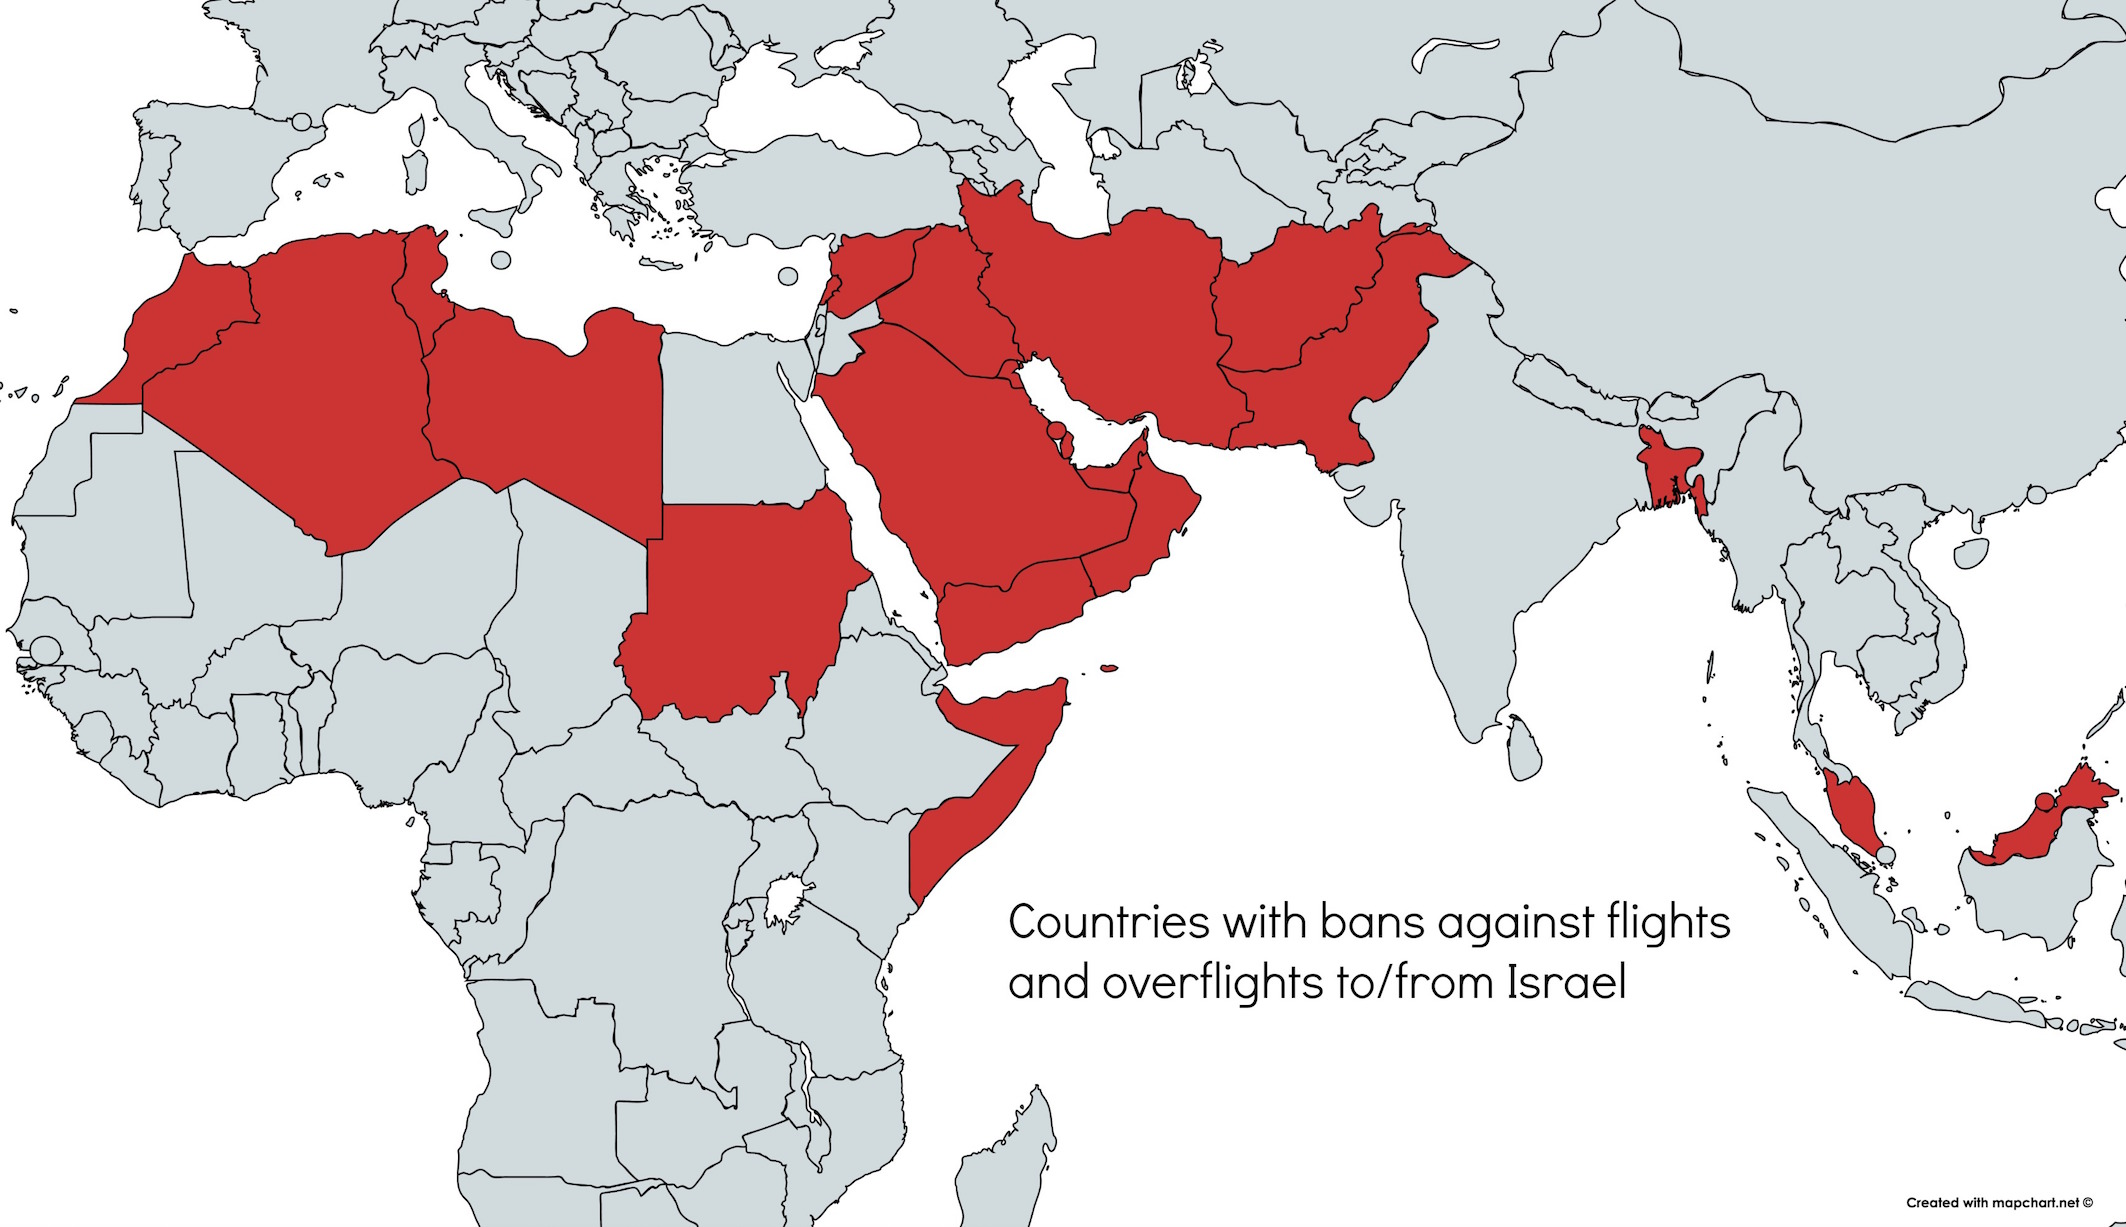 Countries with bans on flights to Israel